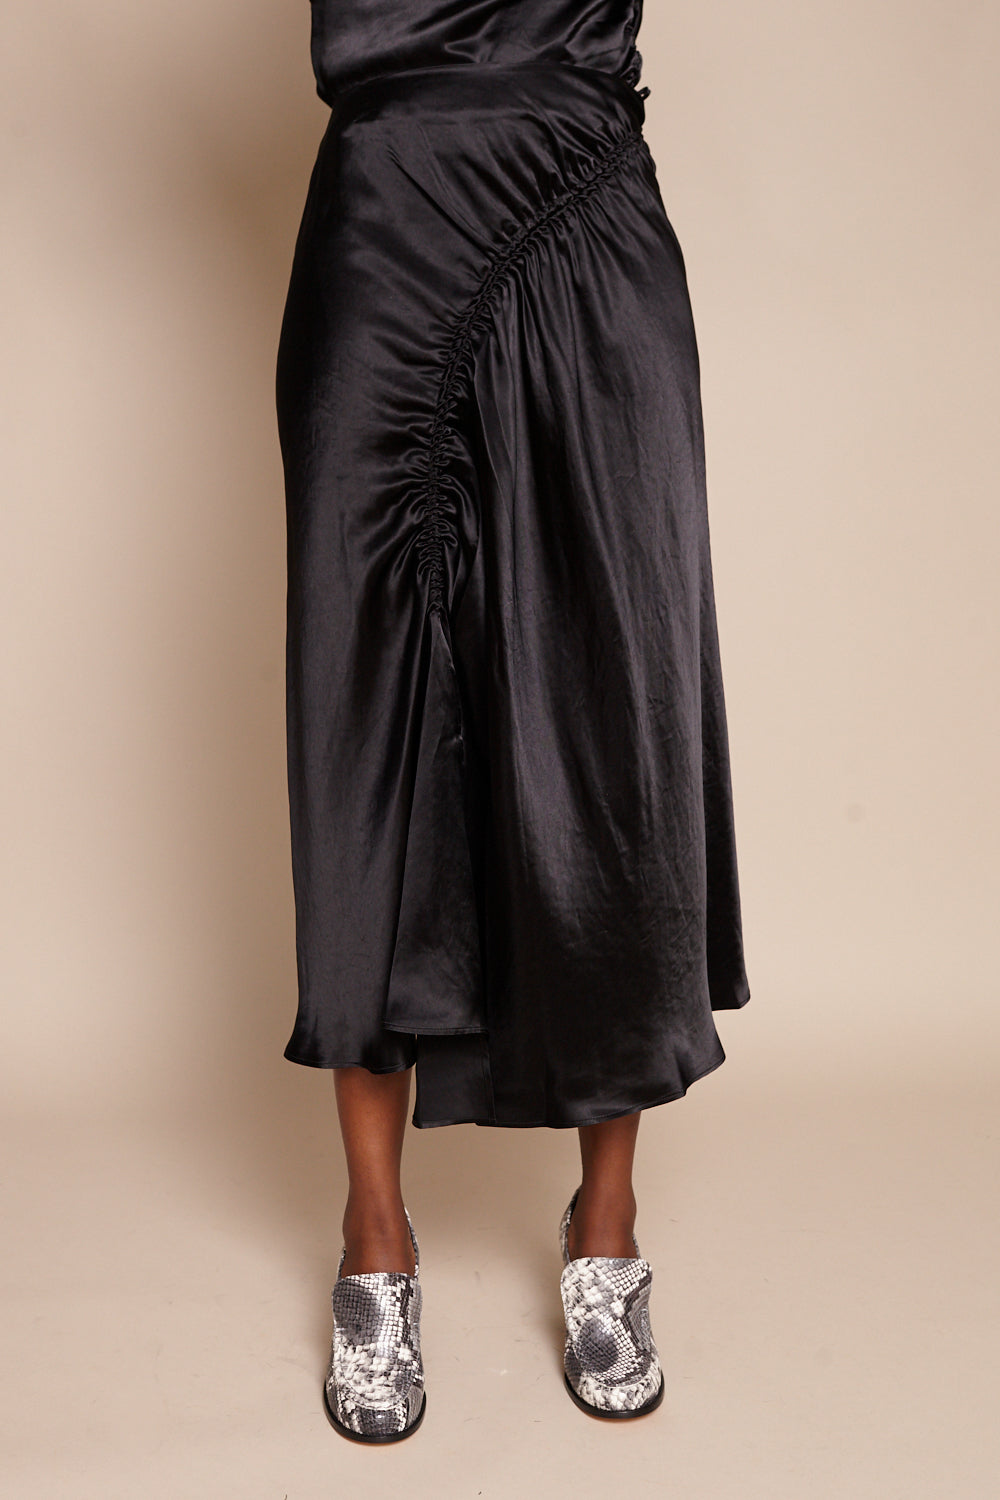 Rives Skirt in Onyx